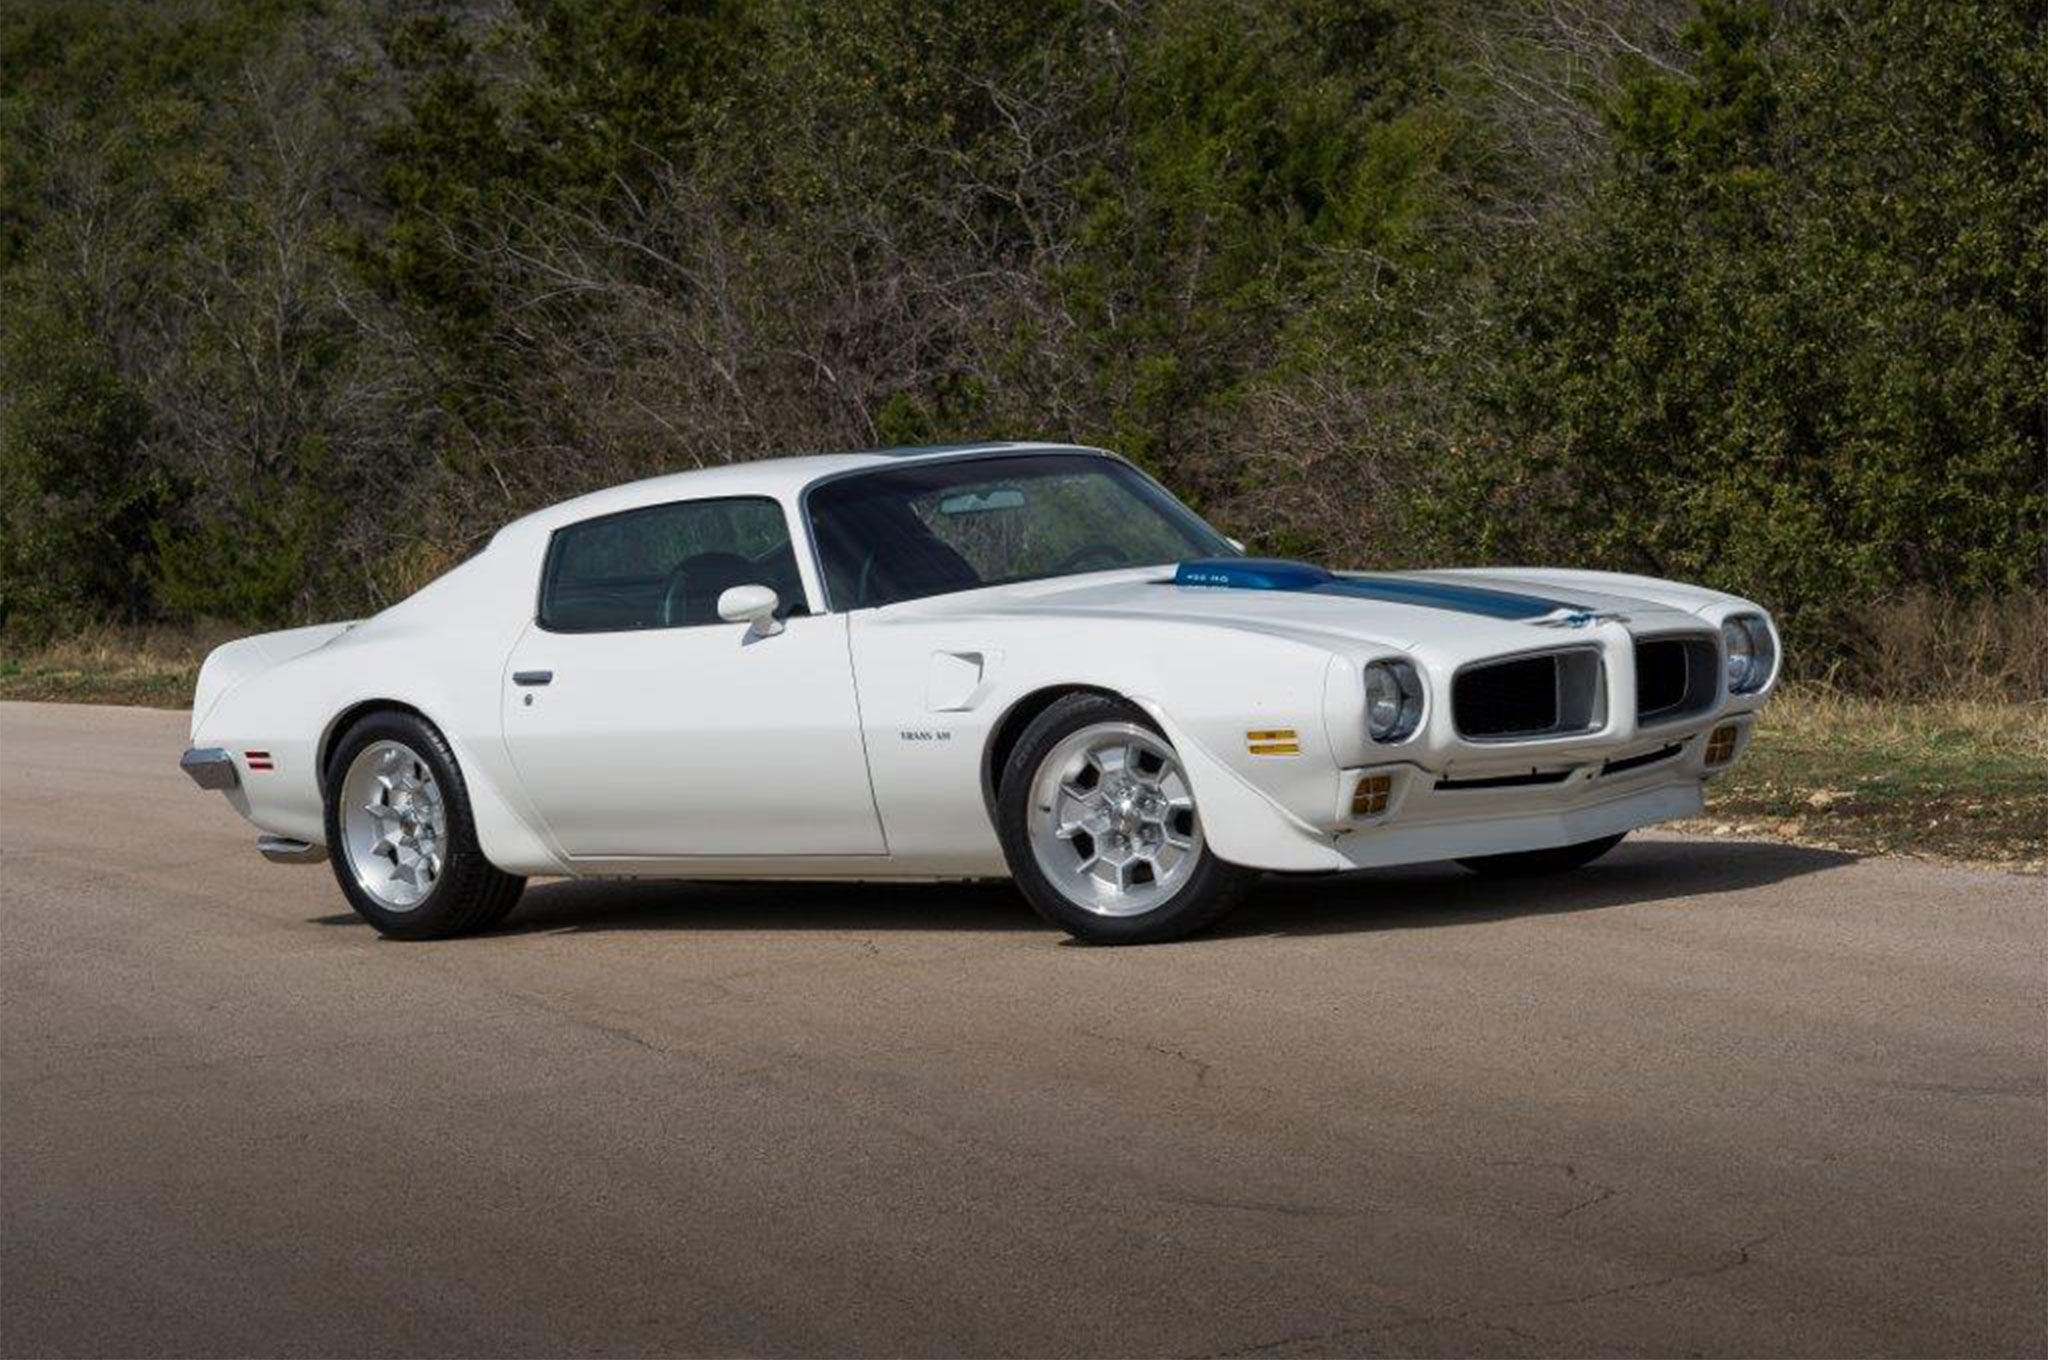 With 54,000 miles on its odometer, the Trans Am's body was rust-free and simply in need of a fresh coat of paint to meet SW's stringent standards. Its suspension was modified to lower the stance by 2 to 3 inches.